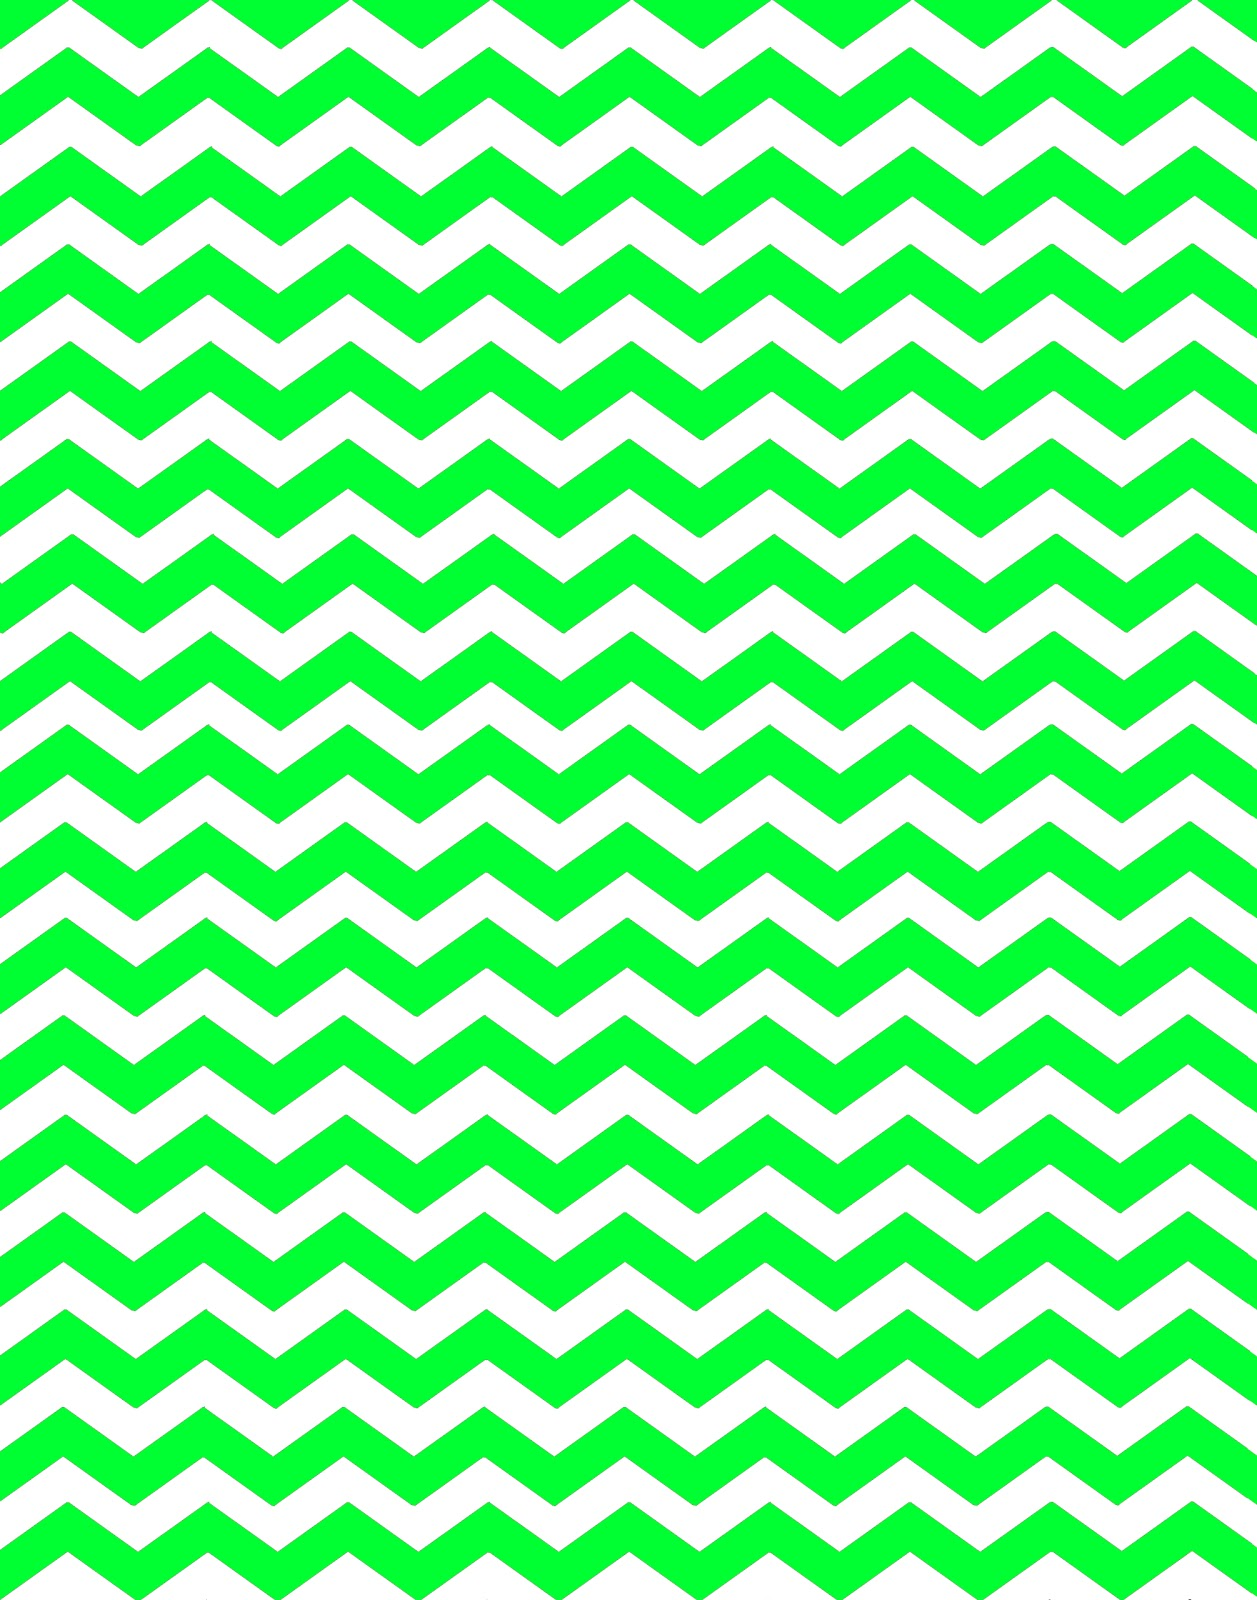 Green Chevron Wallpaper Wallpapersafari